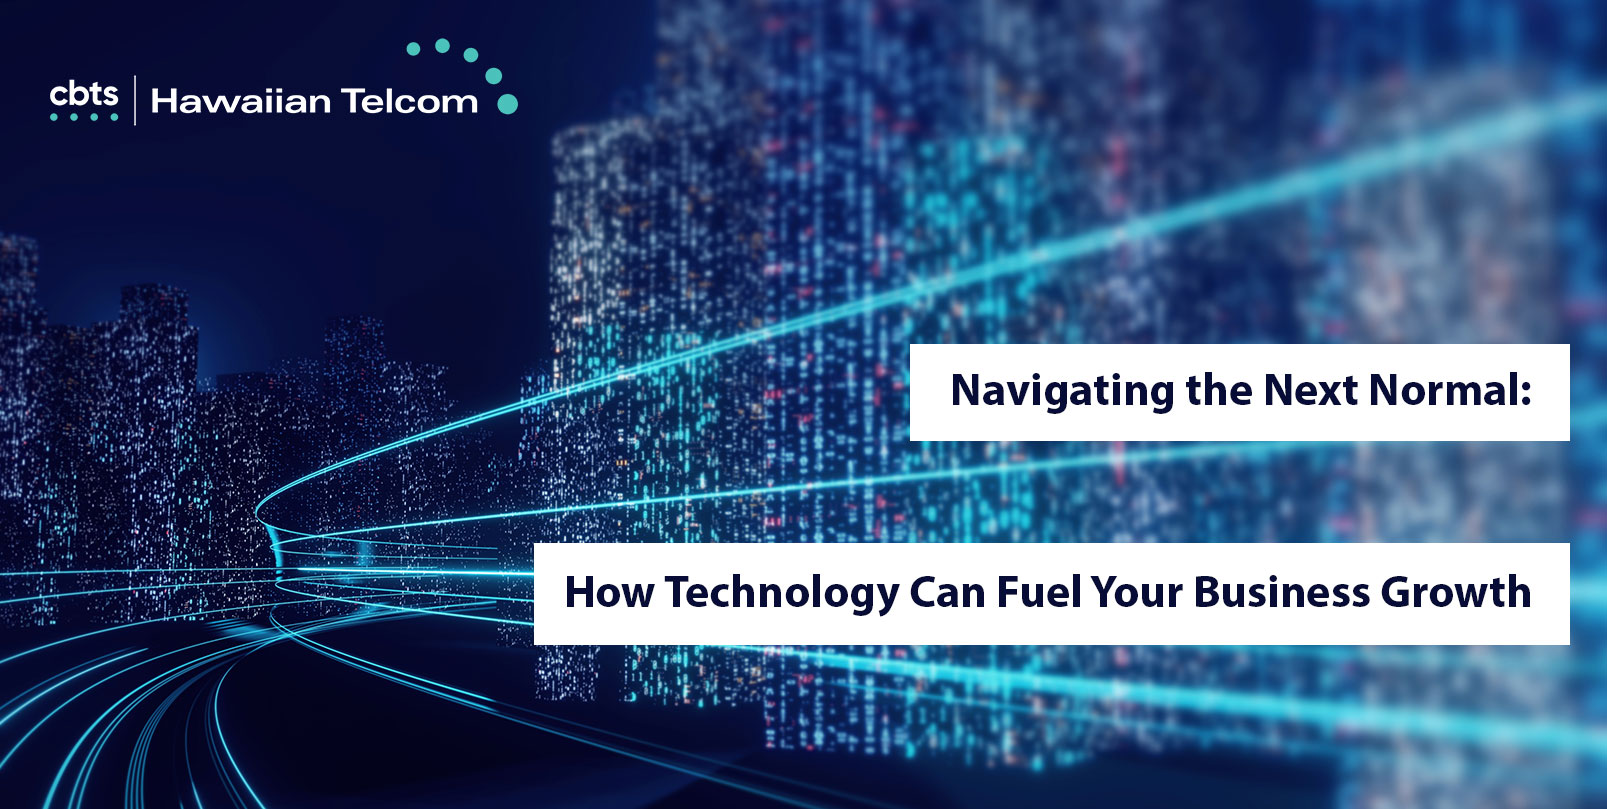 Navigating the Next Normal: How Technology Can Fuel Your Business Growth